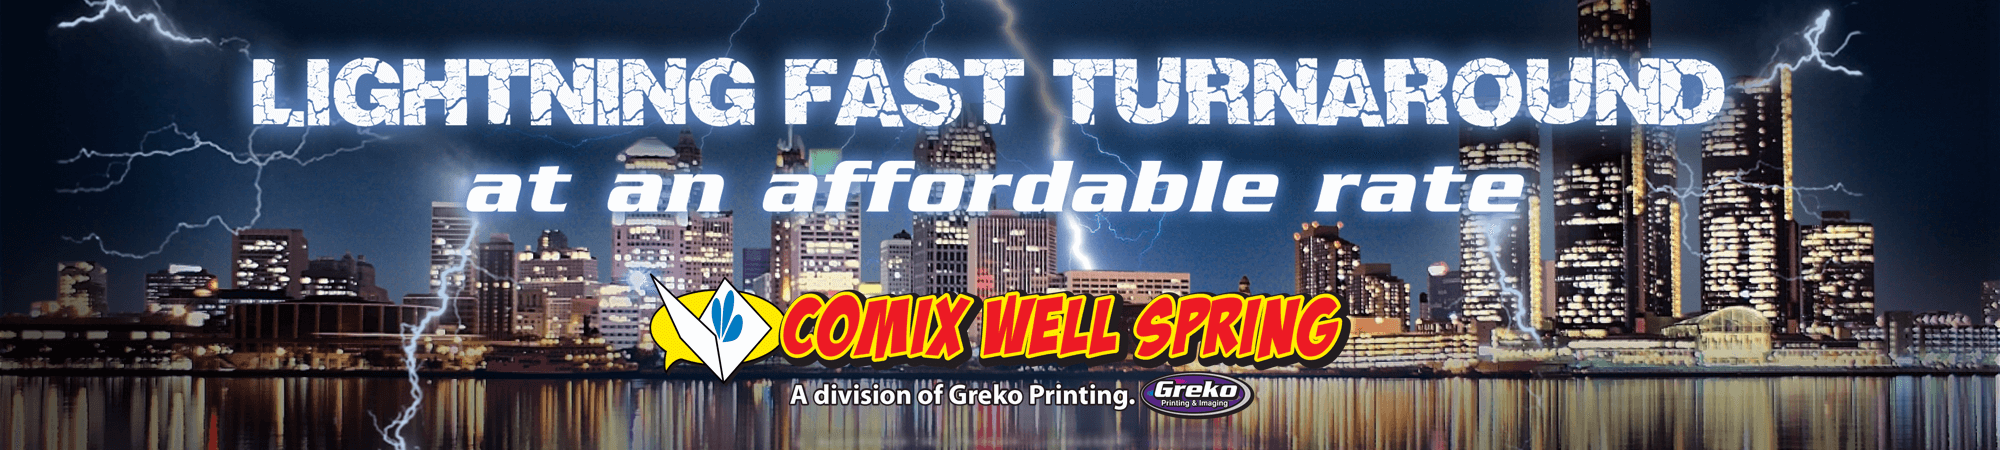 fast printing services in Plymouth, MI